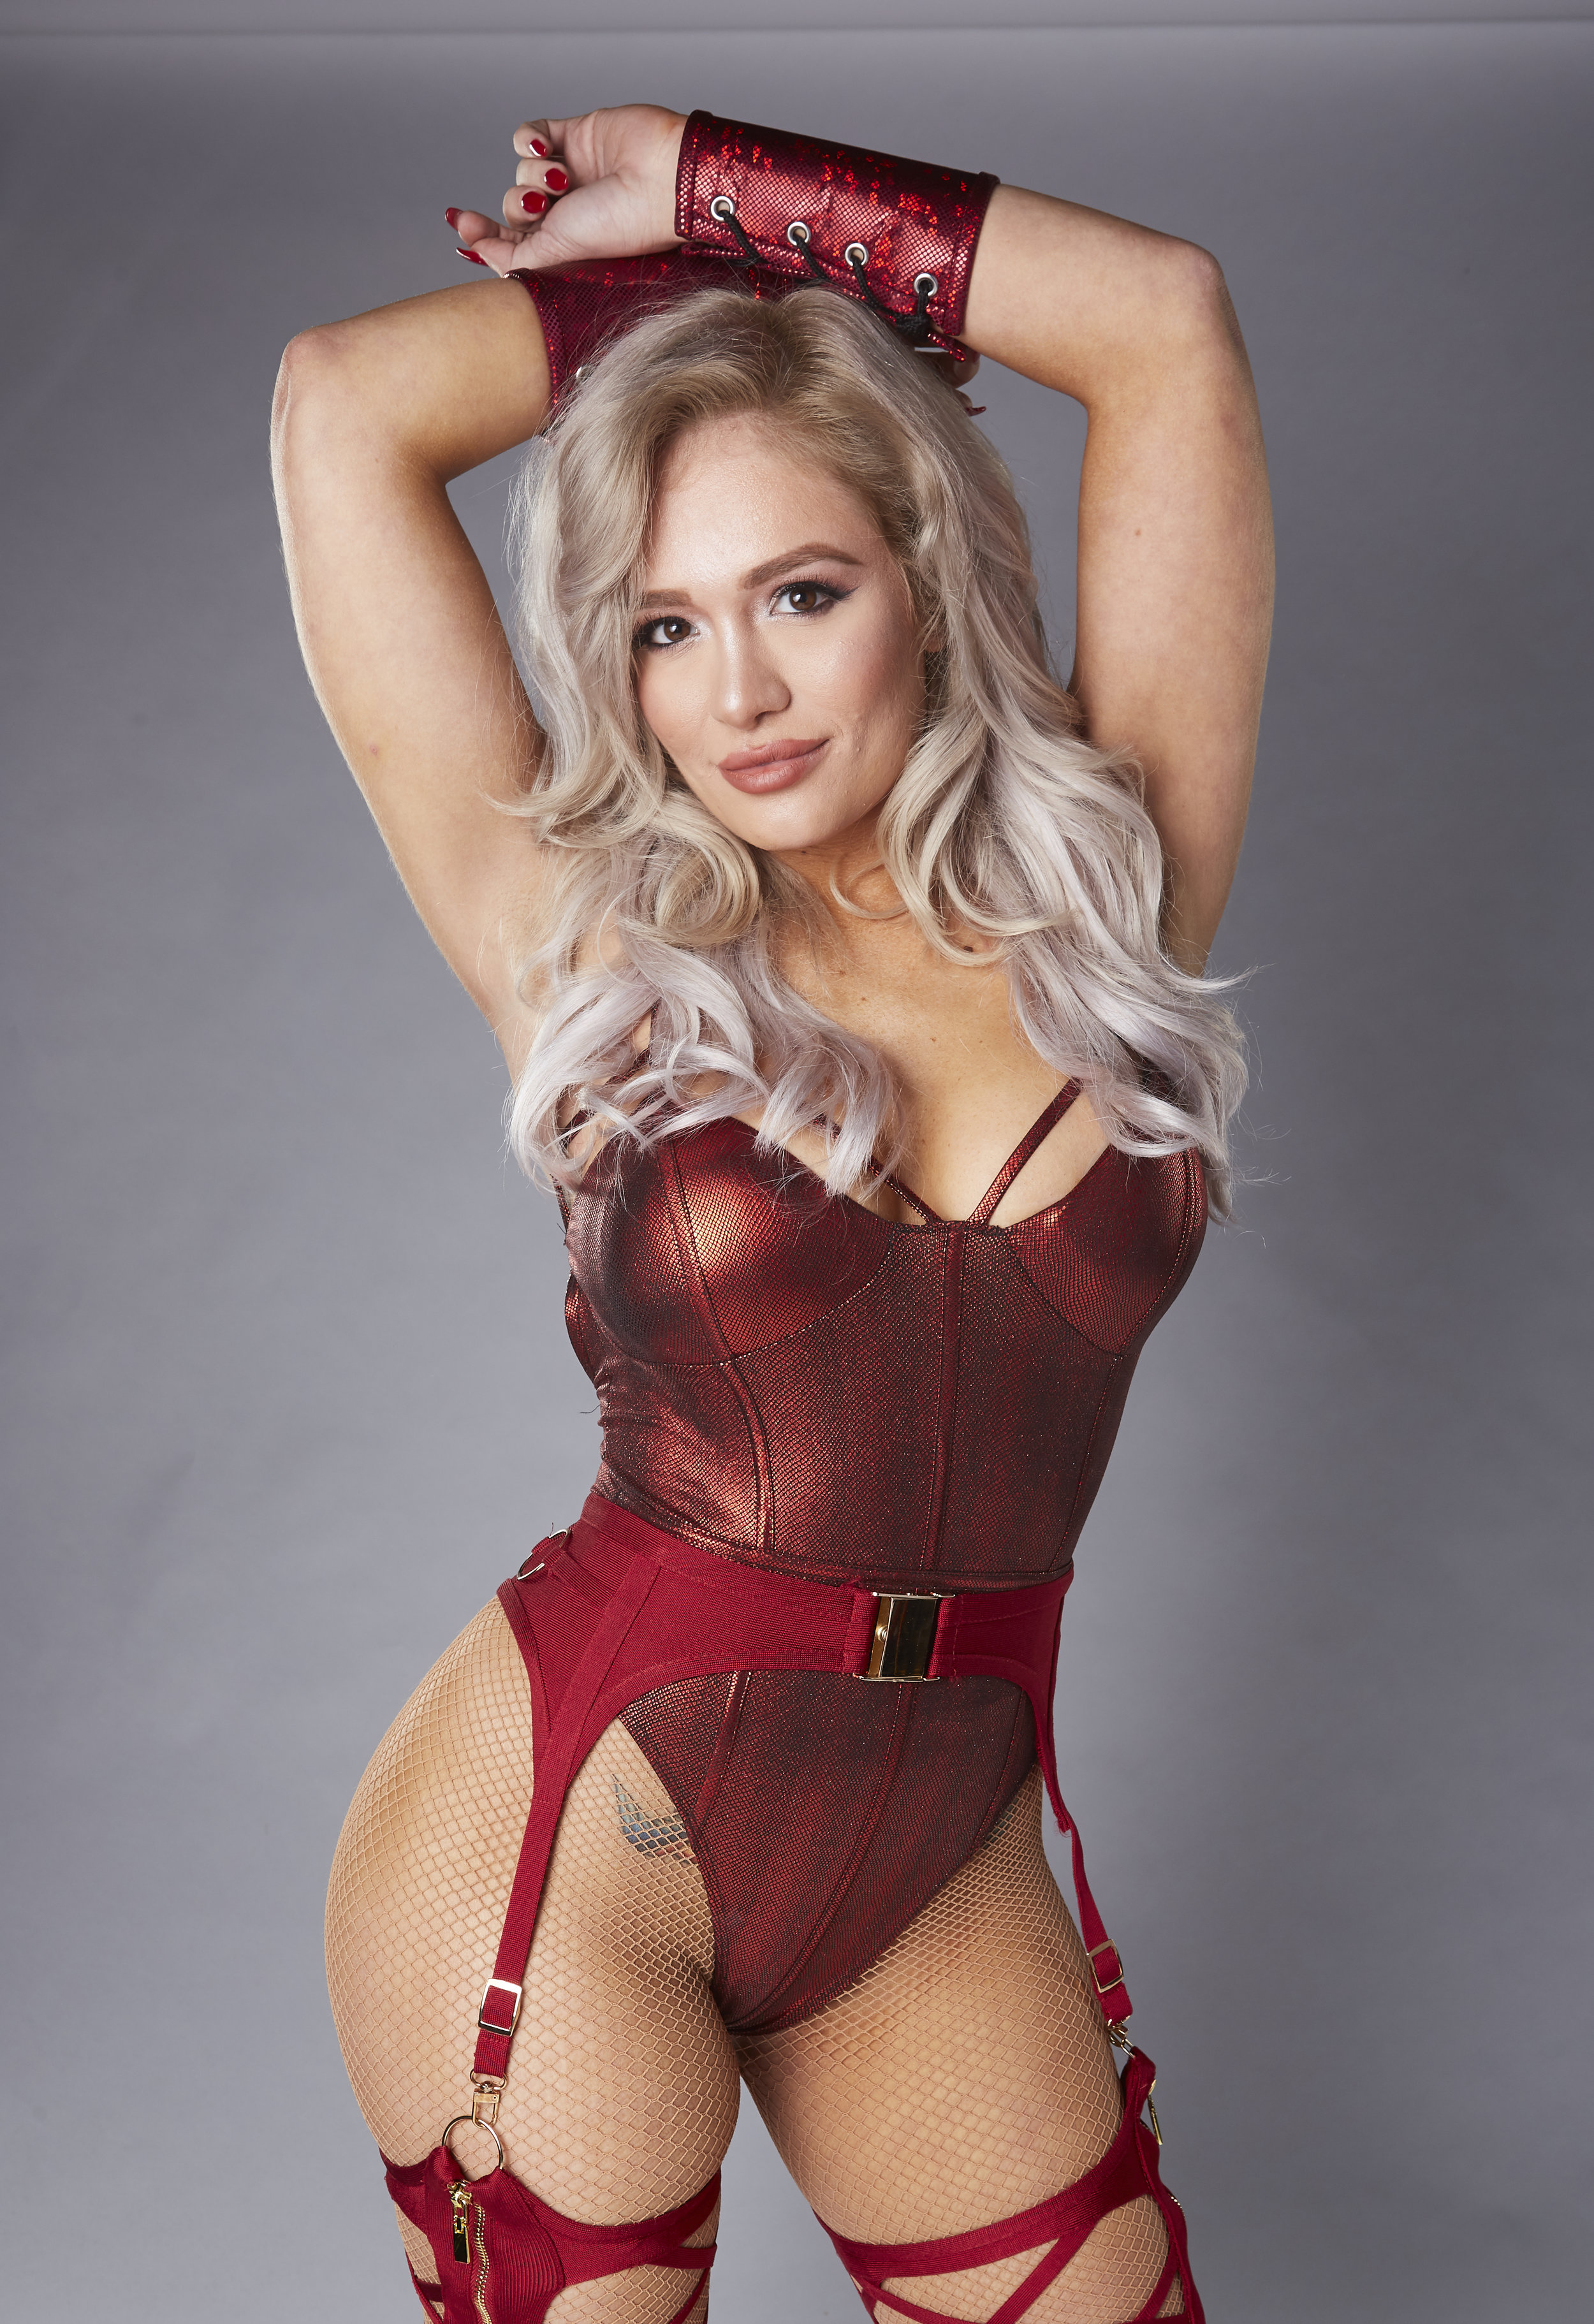 Pictures Scarlett Bordeaux nude (72 photos), Leaked